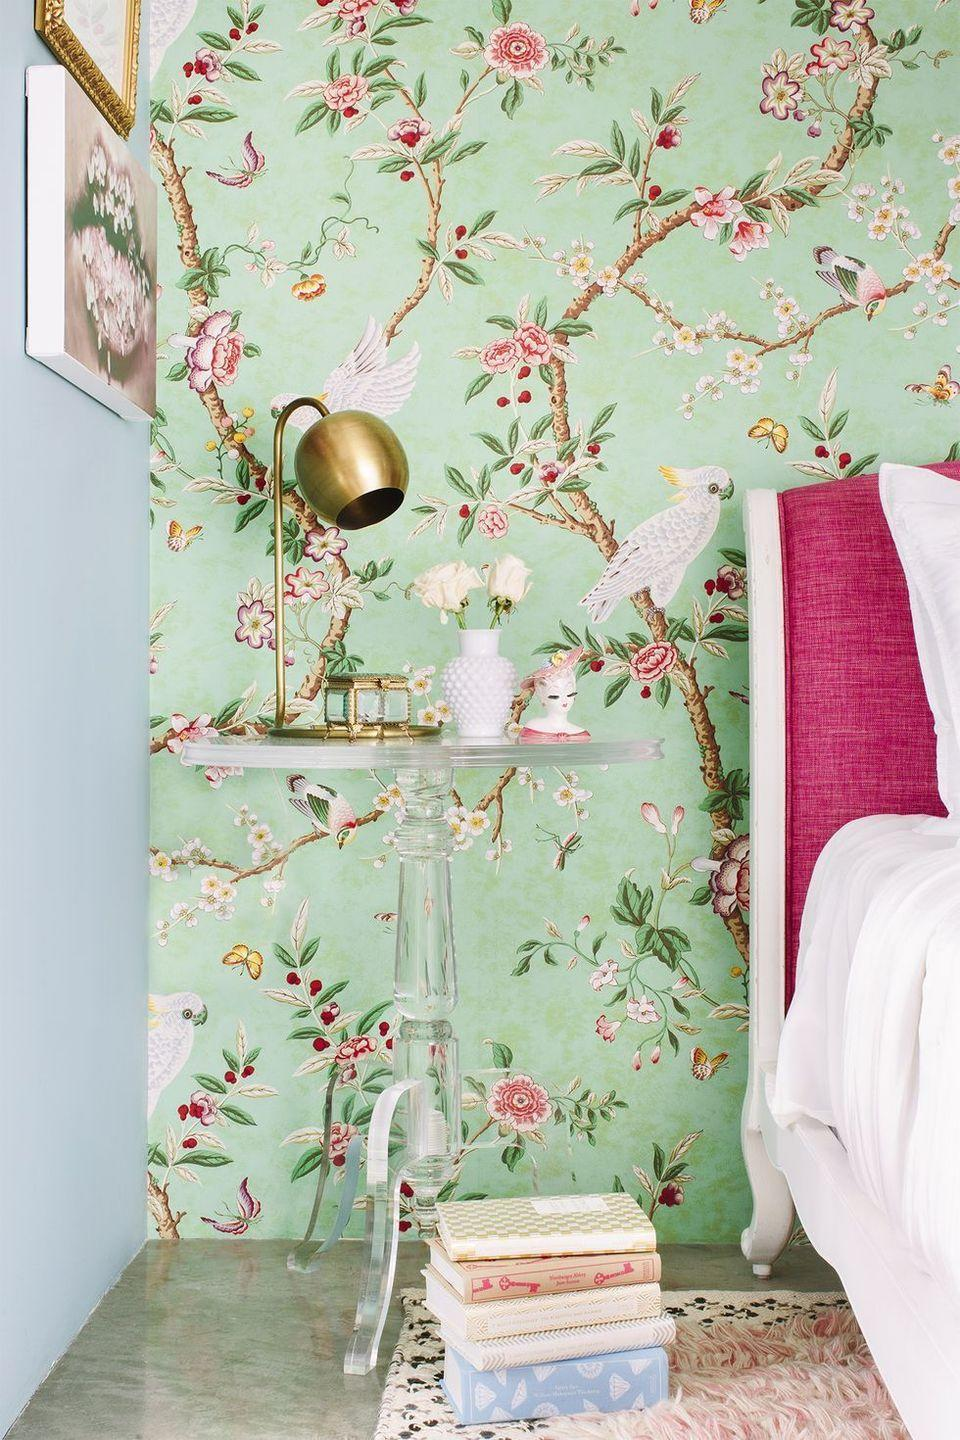 <p>Your bedroom should reflect your style. If you love nothing more than making a statement, an eye-catching floral wallpaper is for you. </p>